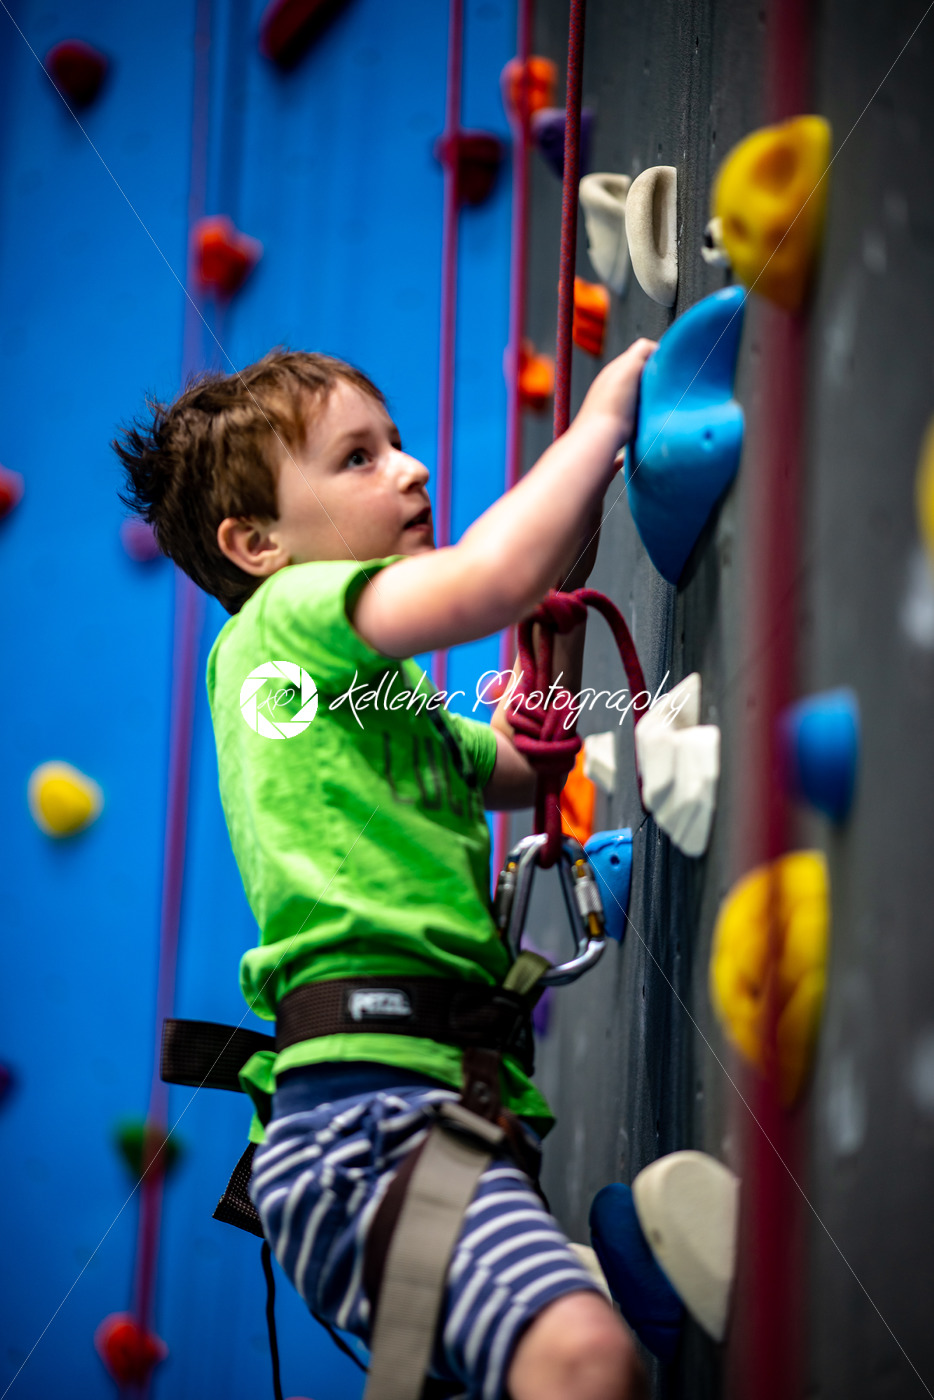 Young boy climbing up on practice wall in indoor rock gym - Kelleher Photography Store